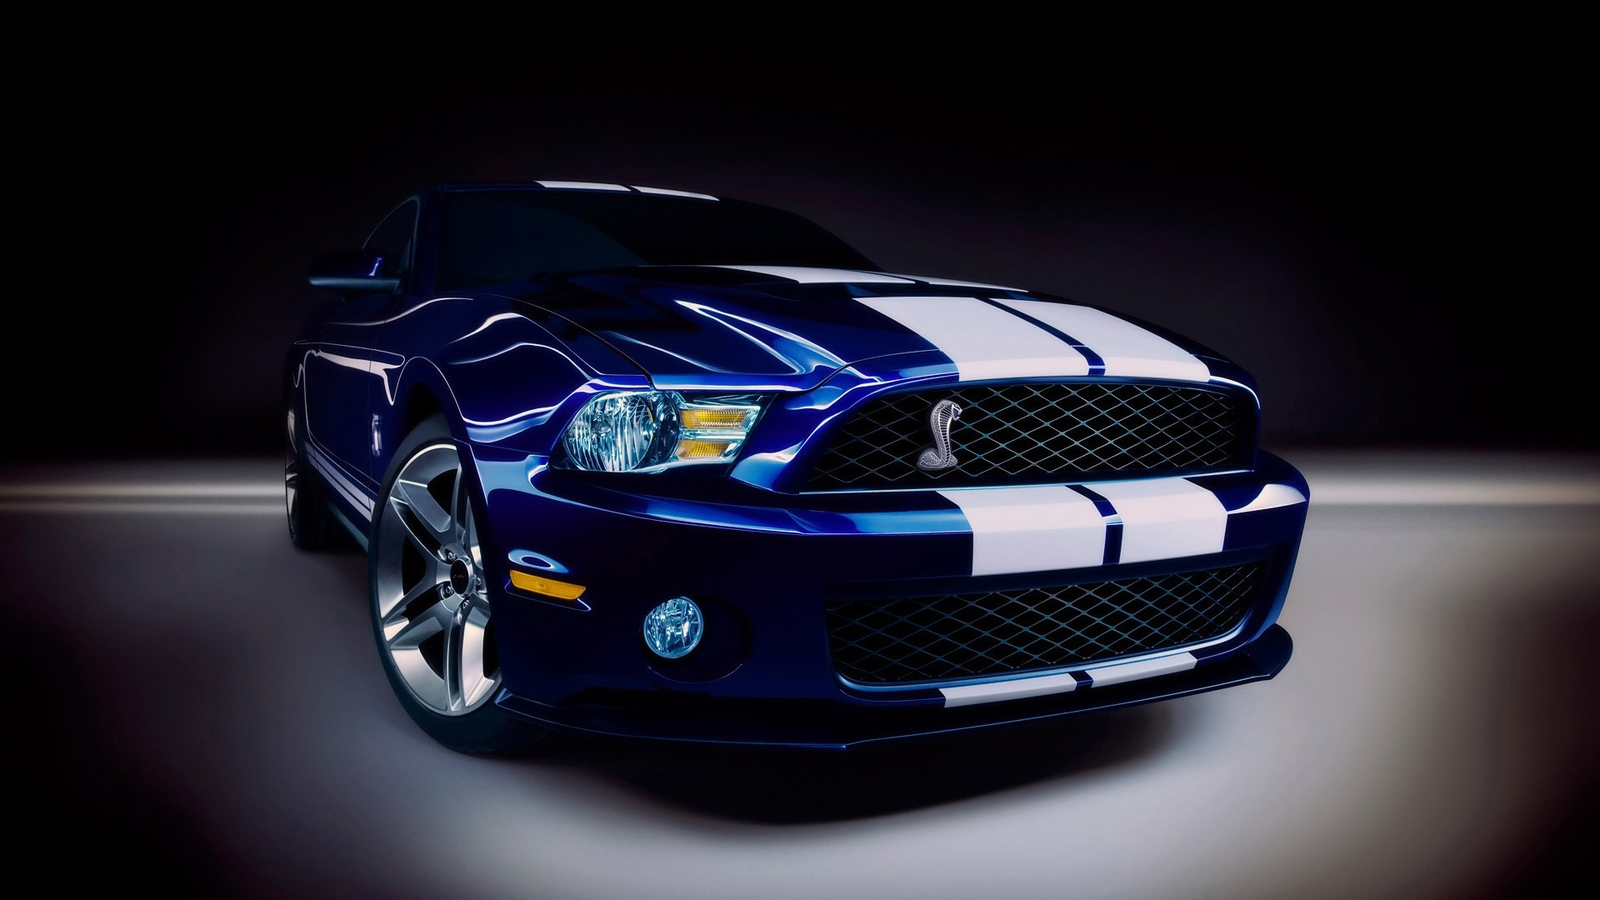 Desktop Wallpapers Hd Ford Shelby Gt Desktop Wallpaper   iWallScreen 1600x900